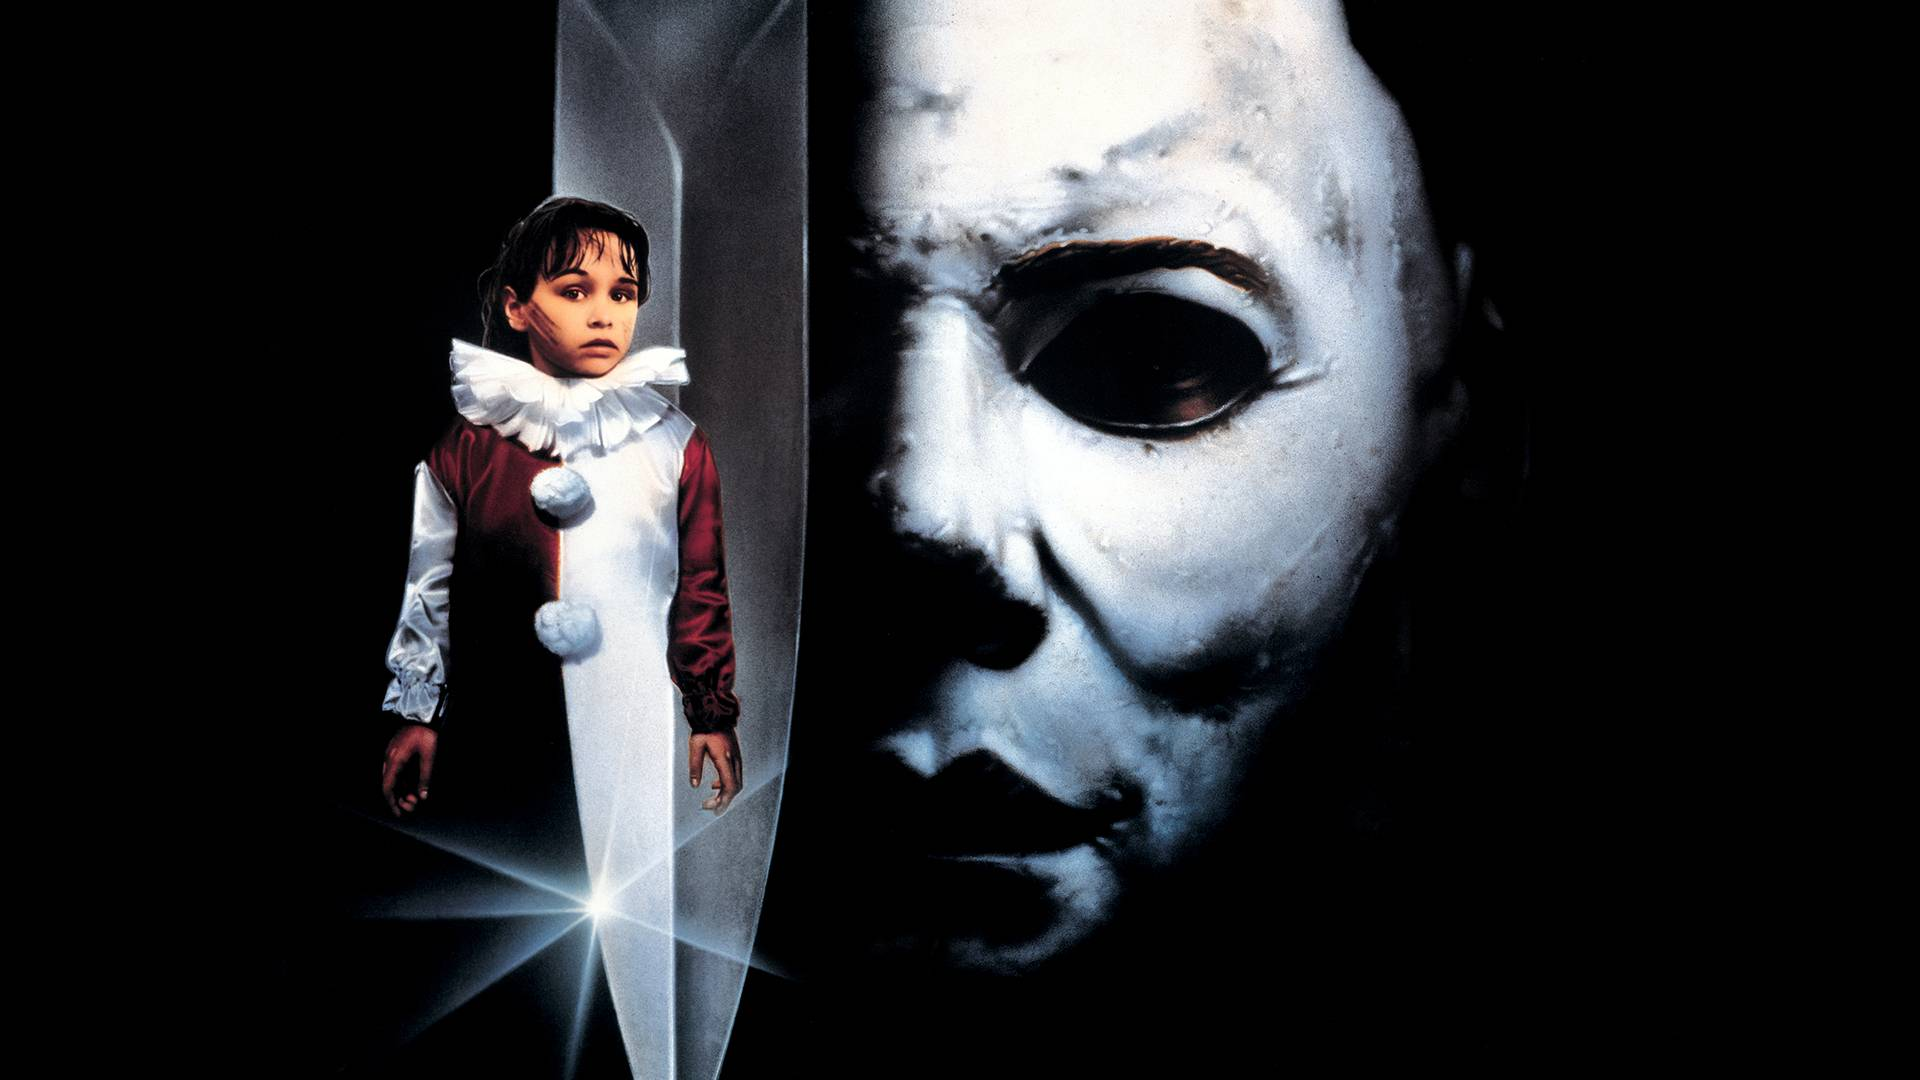 Michael Myers Wallpapers (30 Wallpapers) - Adorable Wallpapers